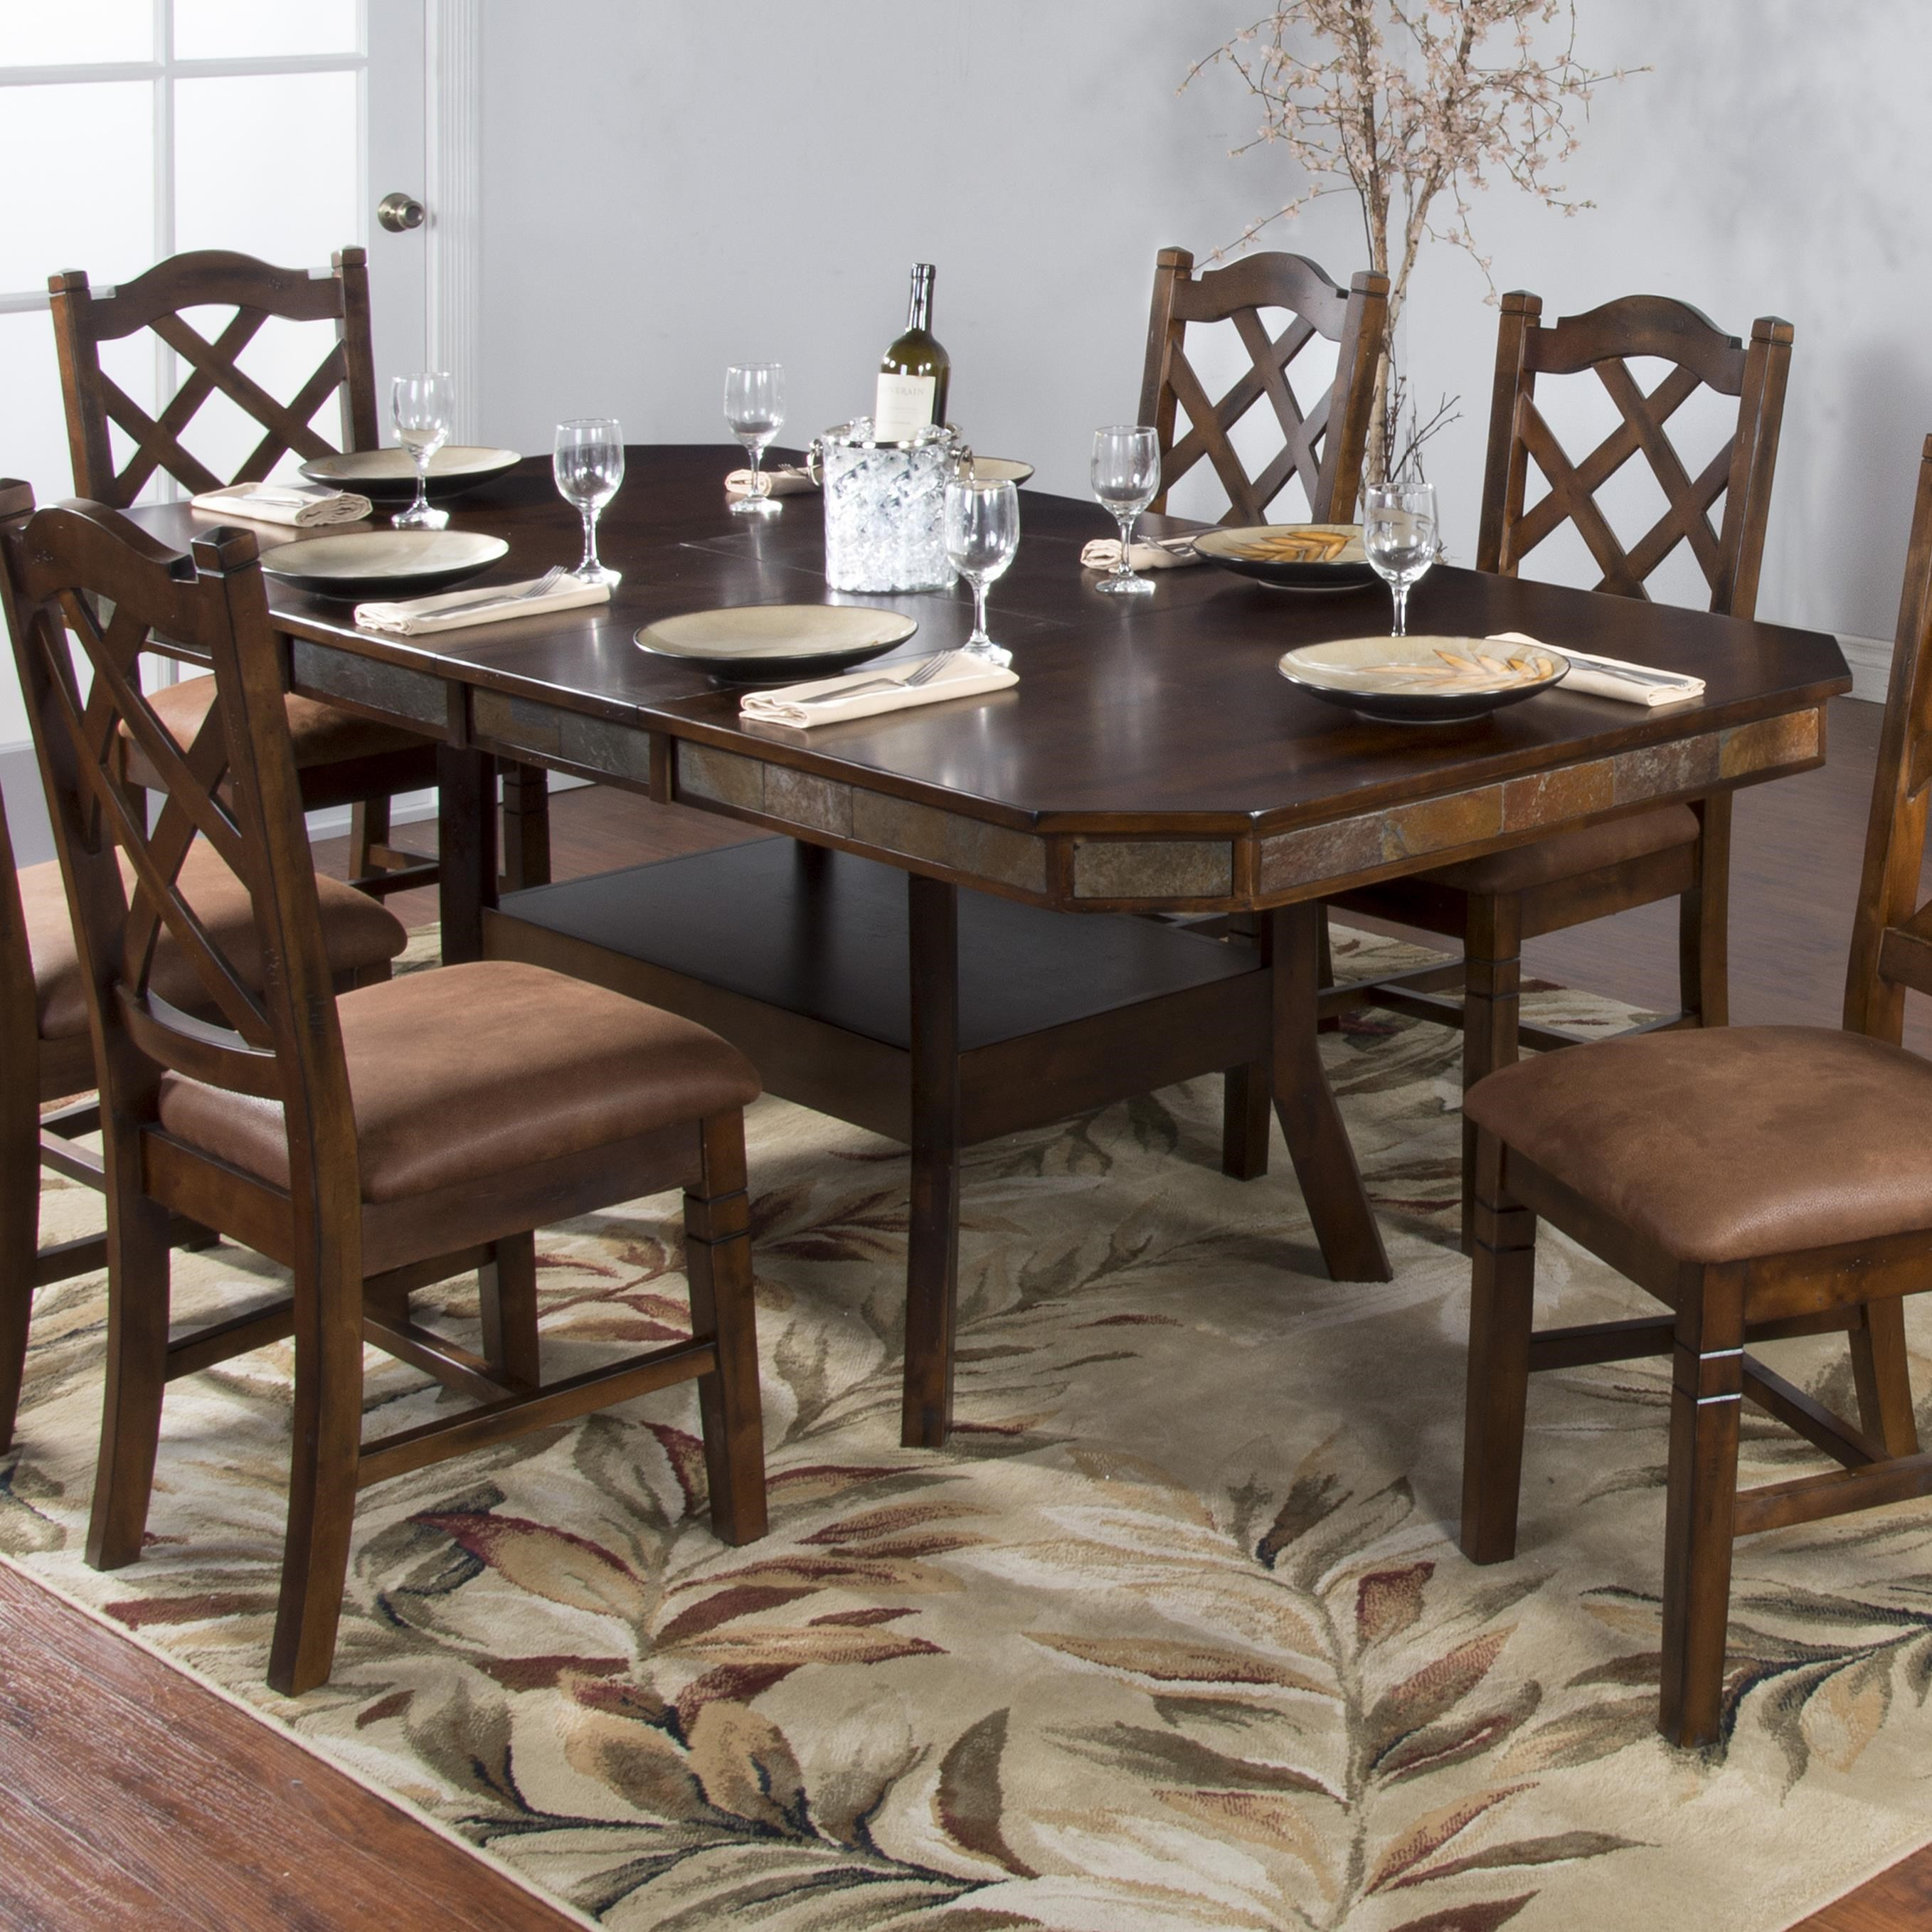 Merveilleux Sunny Designs Santa Fe Adjustable Height Dining Table W/ 2 Butterfly Leaves